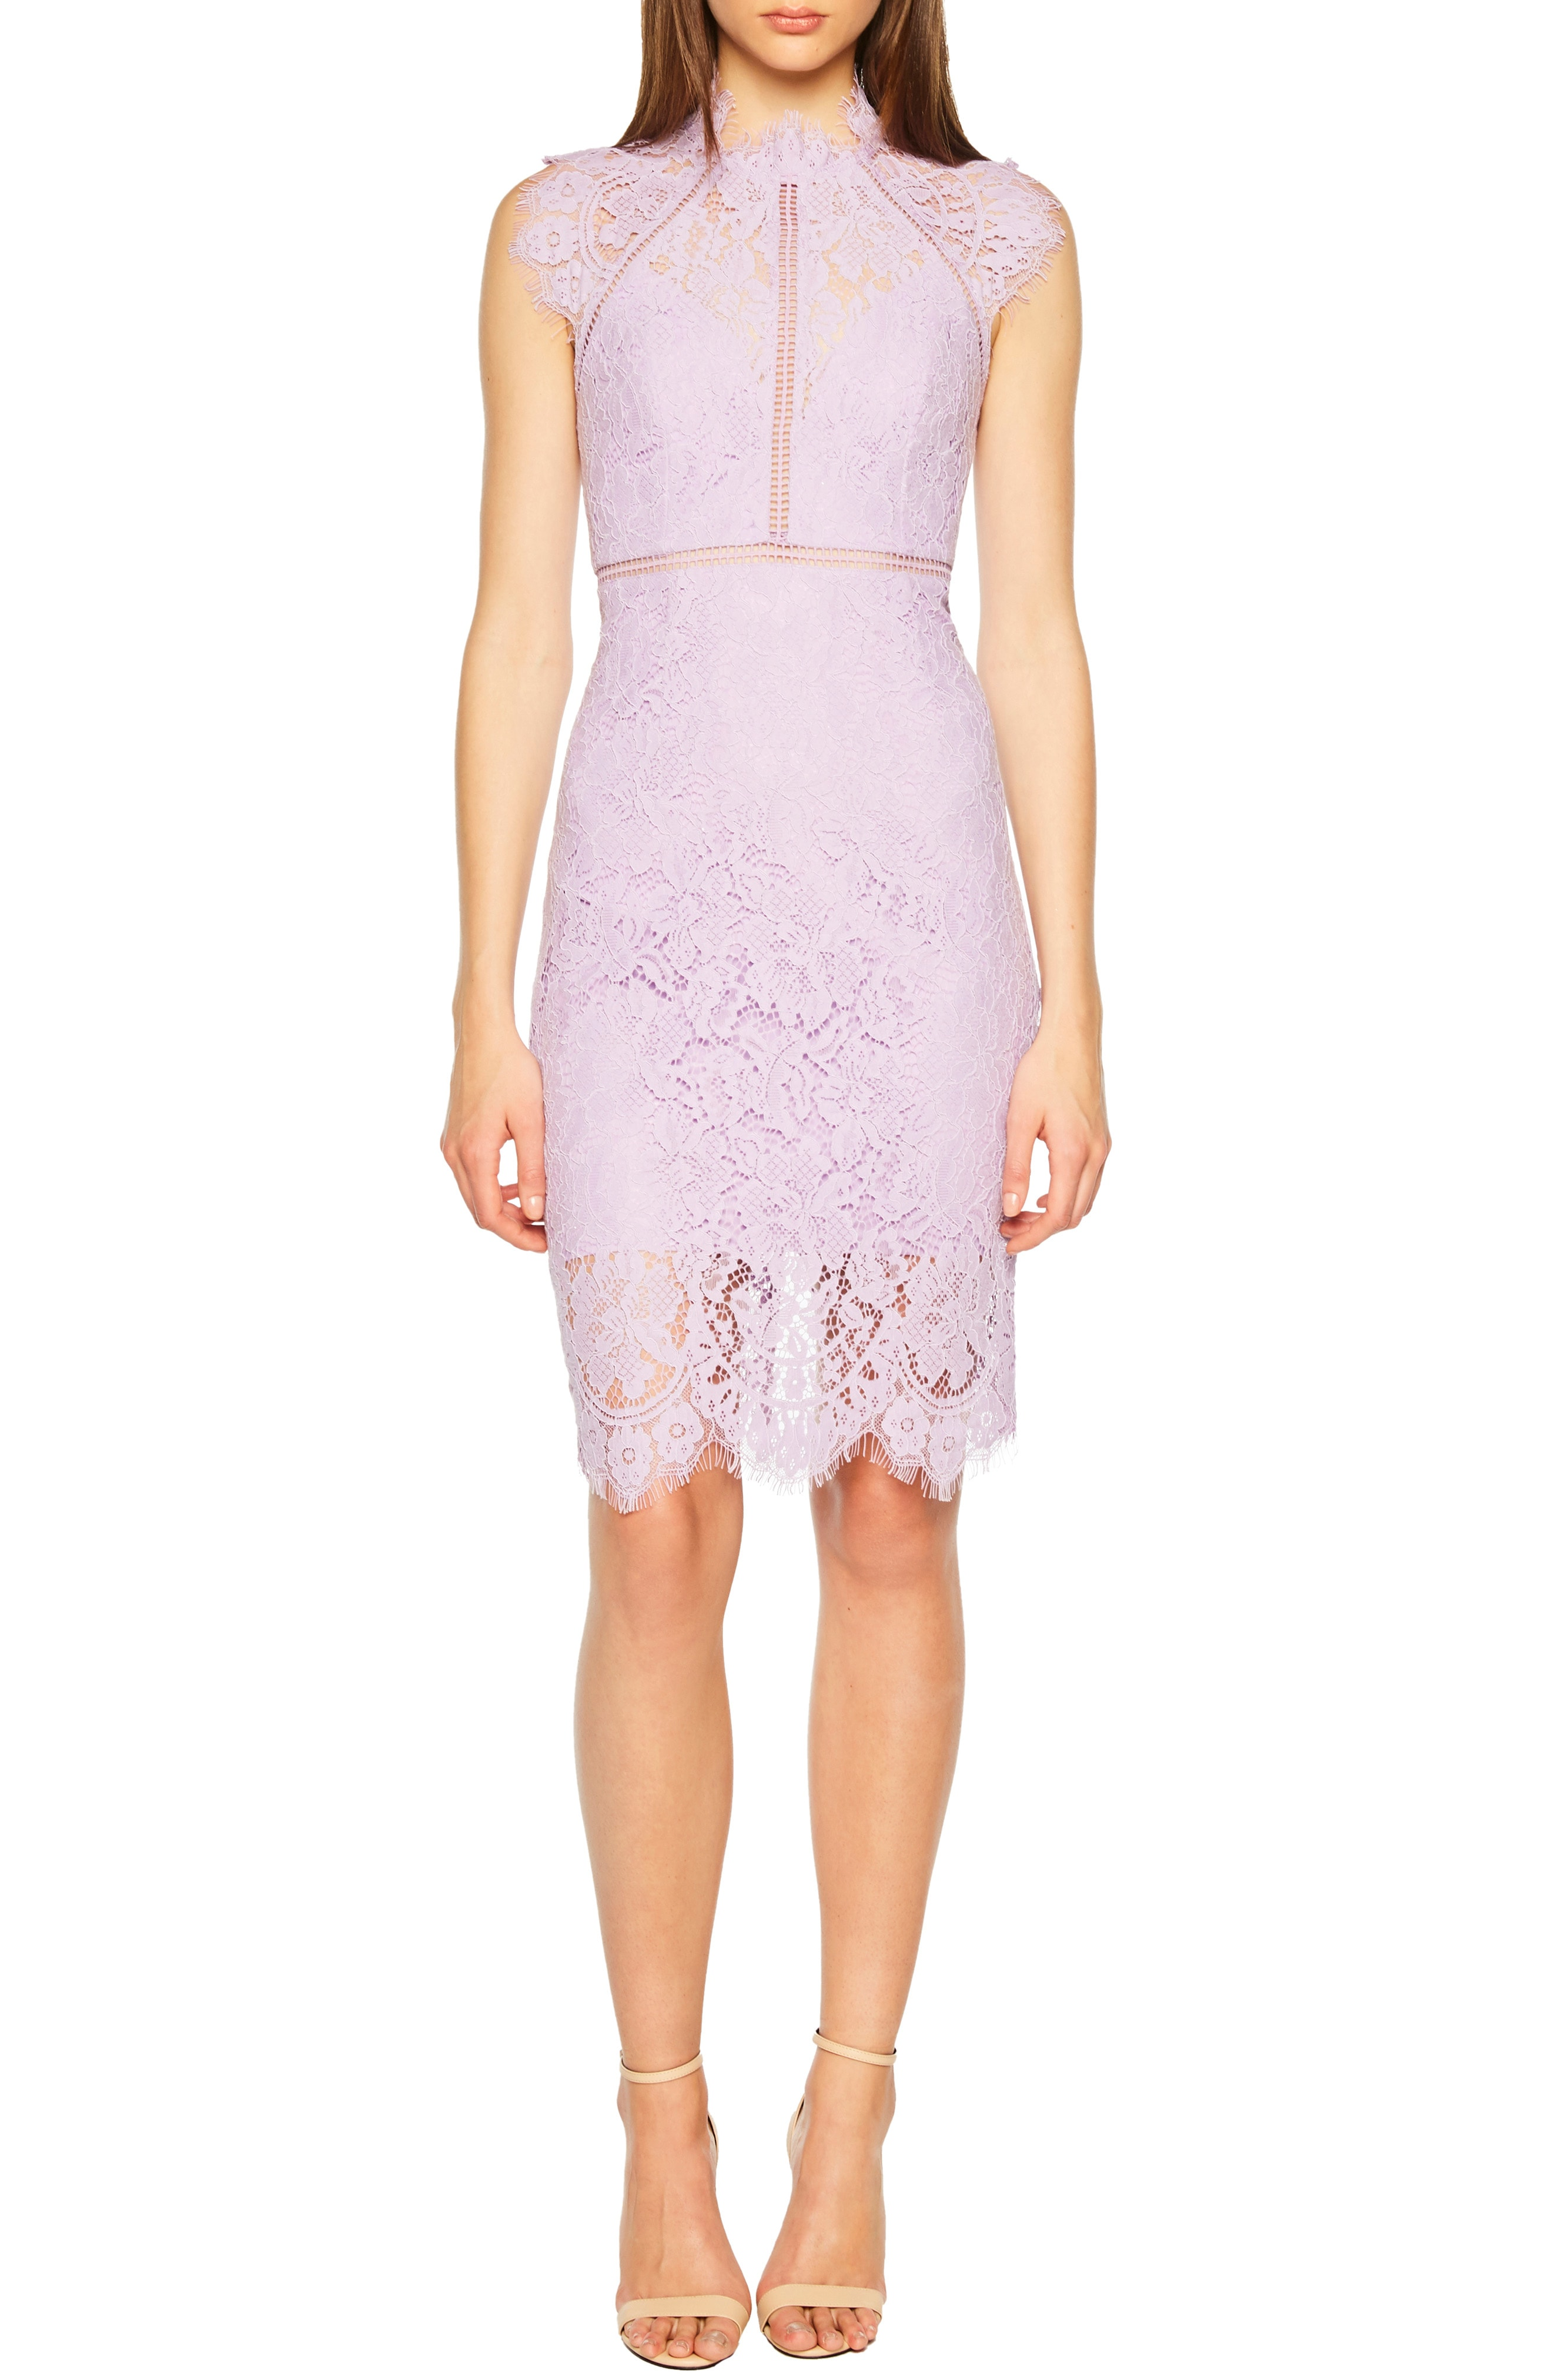 Lace Cocktail & Party Dresses   Nordstrom